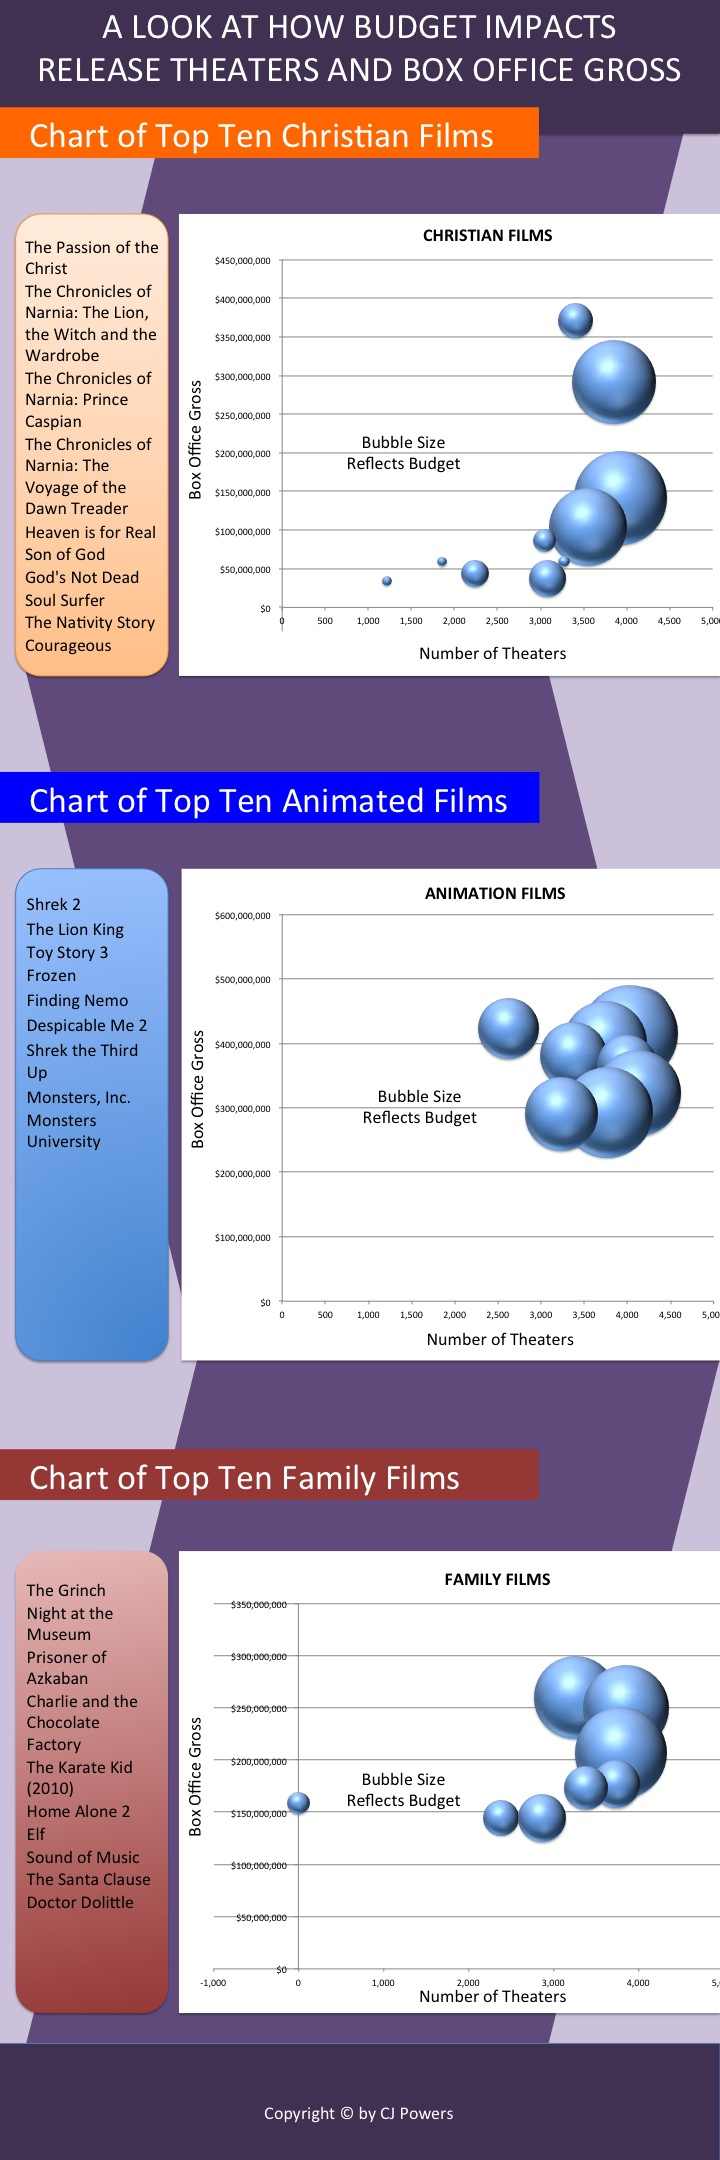 Budget - Theaters - Box Office Gross